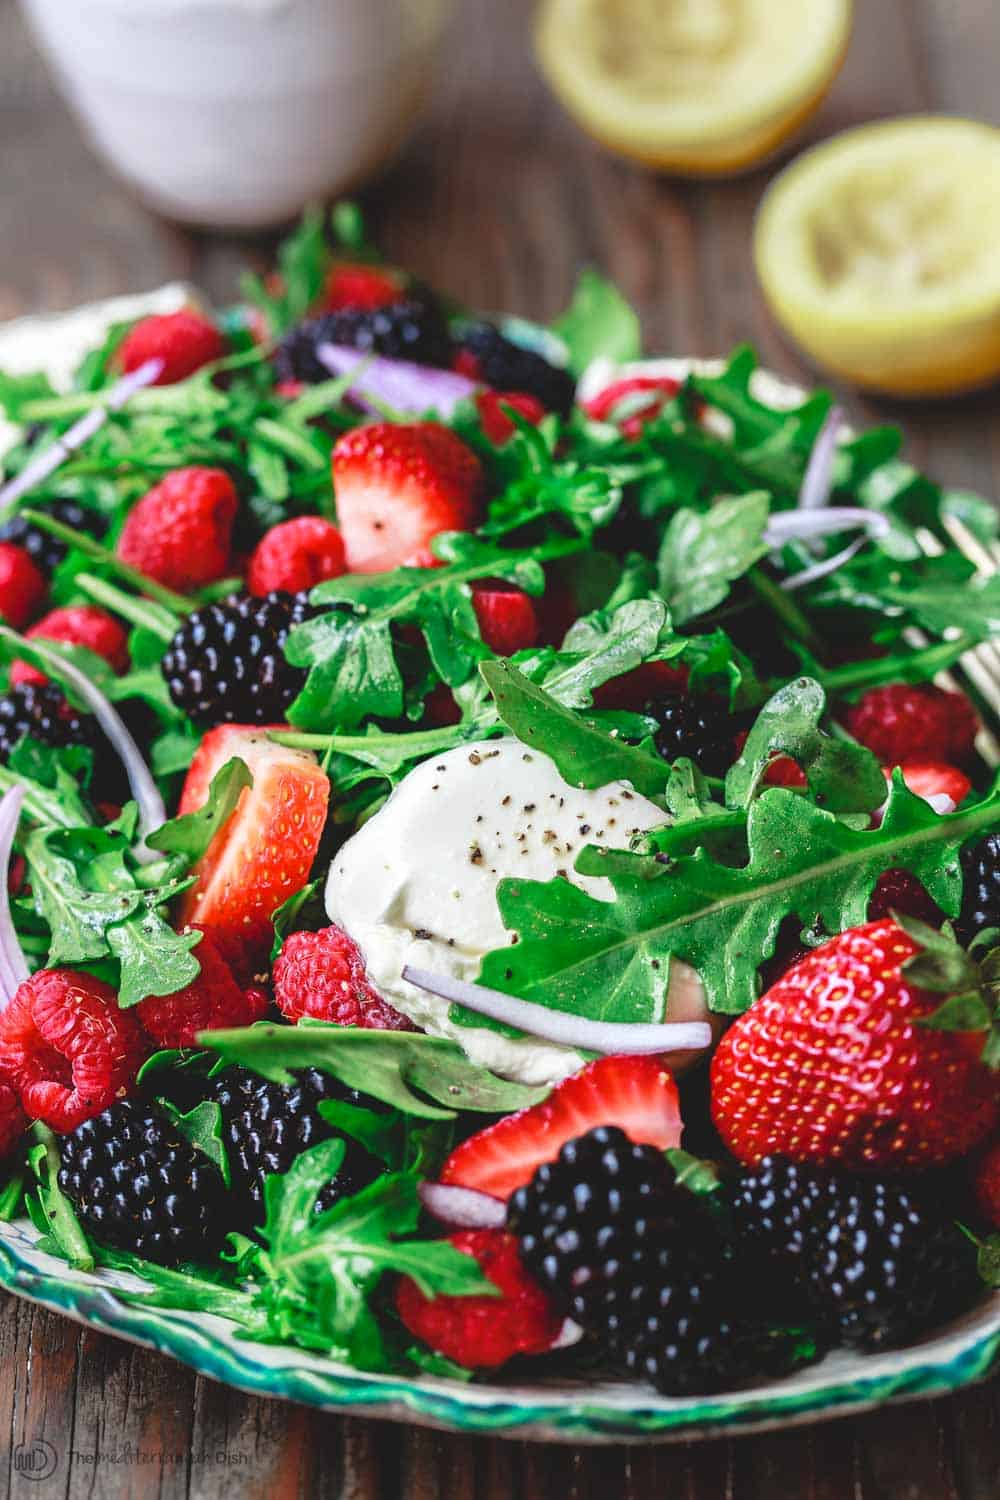 Burrata Arugula Berry Salad | The Mediterranean Dish. This summer berry salad will rock your world. Loads of strawberries, blackberries, and raspberries with peppery arugula and creamy burrata cheese. And the light citrus olive oil dressing is perfect here!